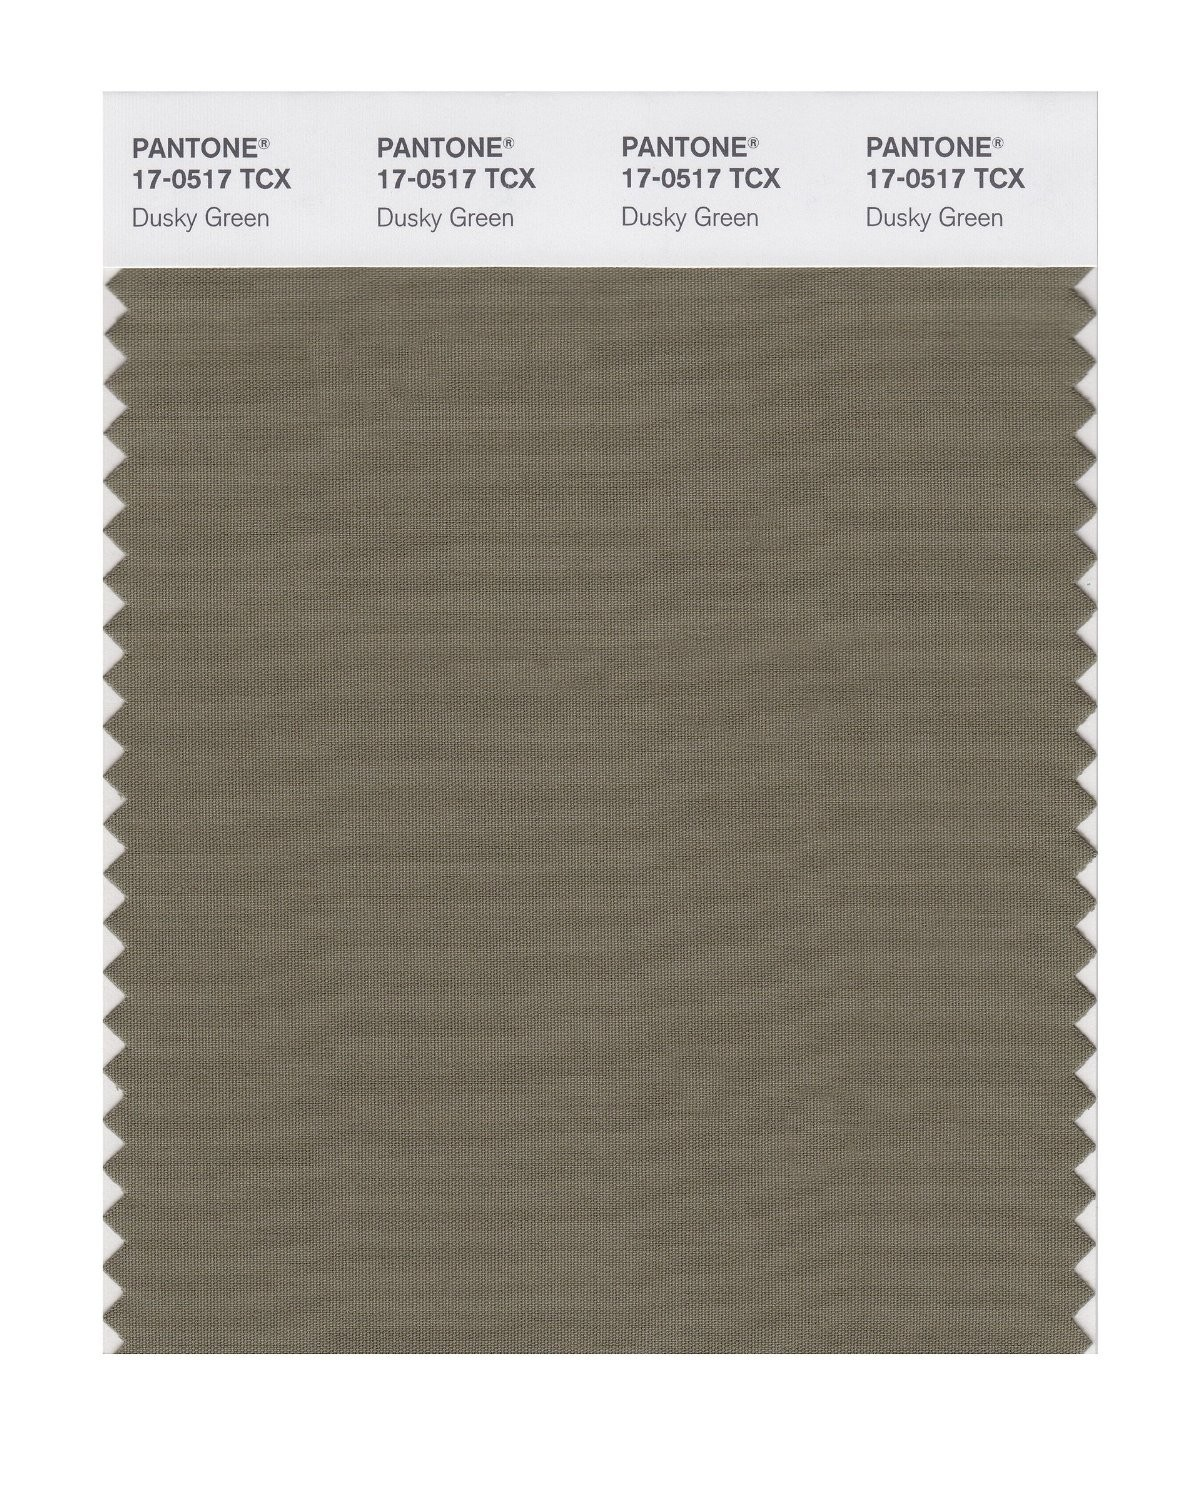 Pantone 17-0517 TCX Swatch Card Dusky Green